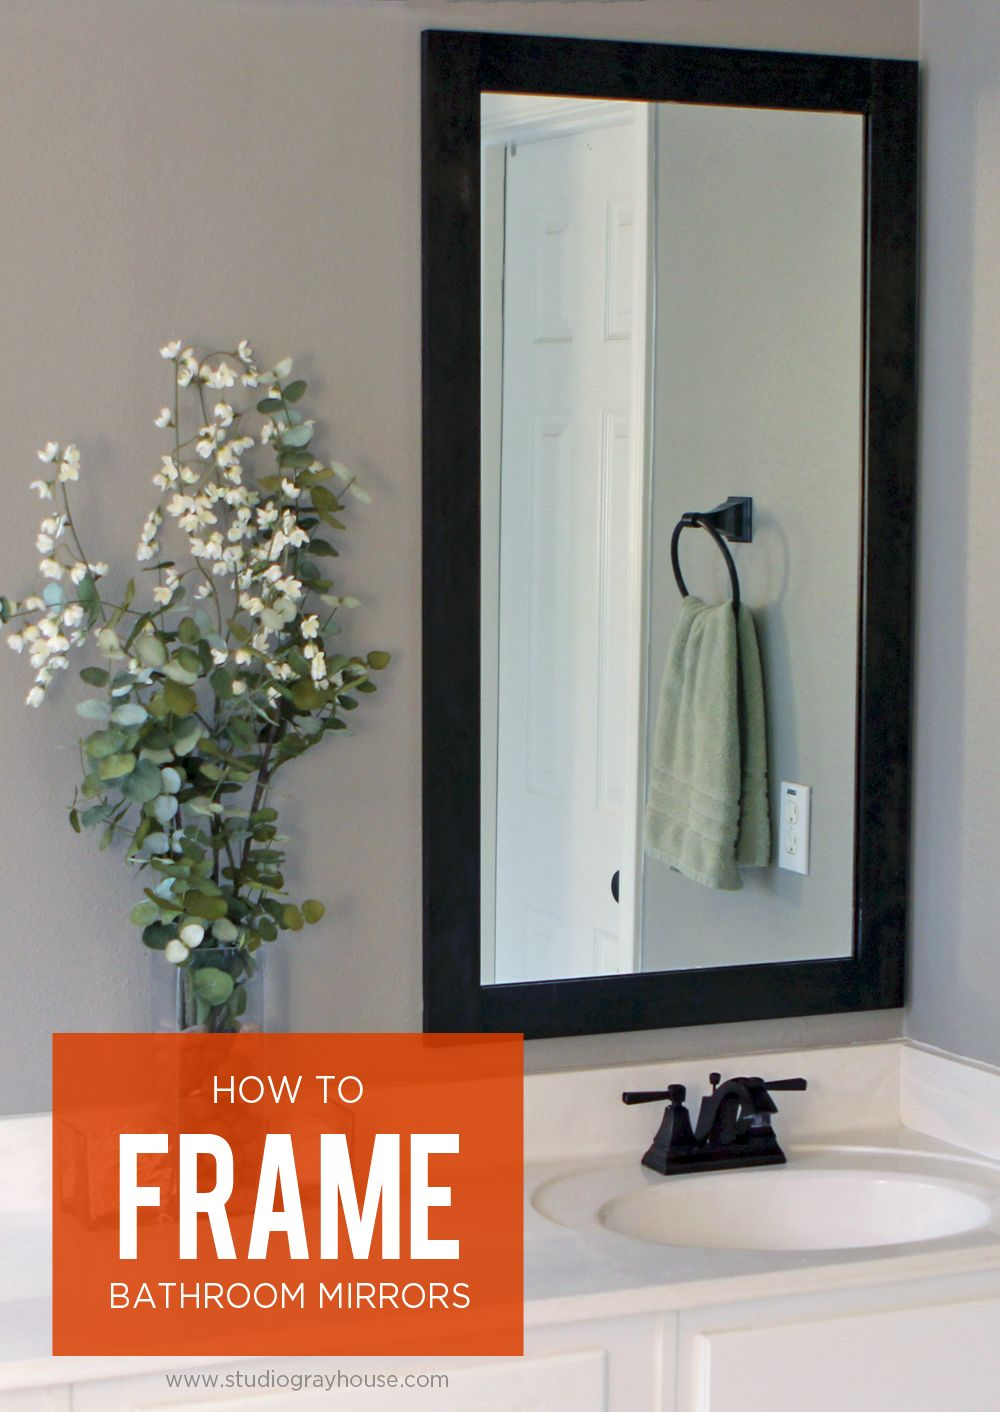 How to Frame Bathroom Mirrors | OGT Blogger Friends | Pinterest ...